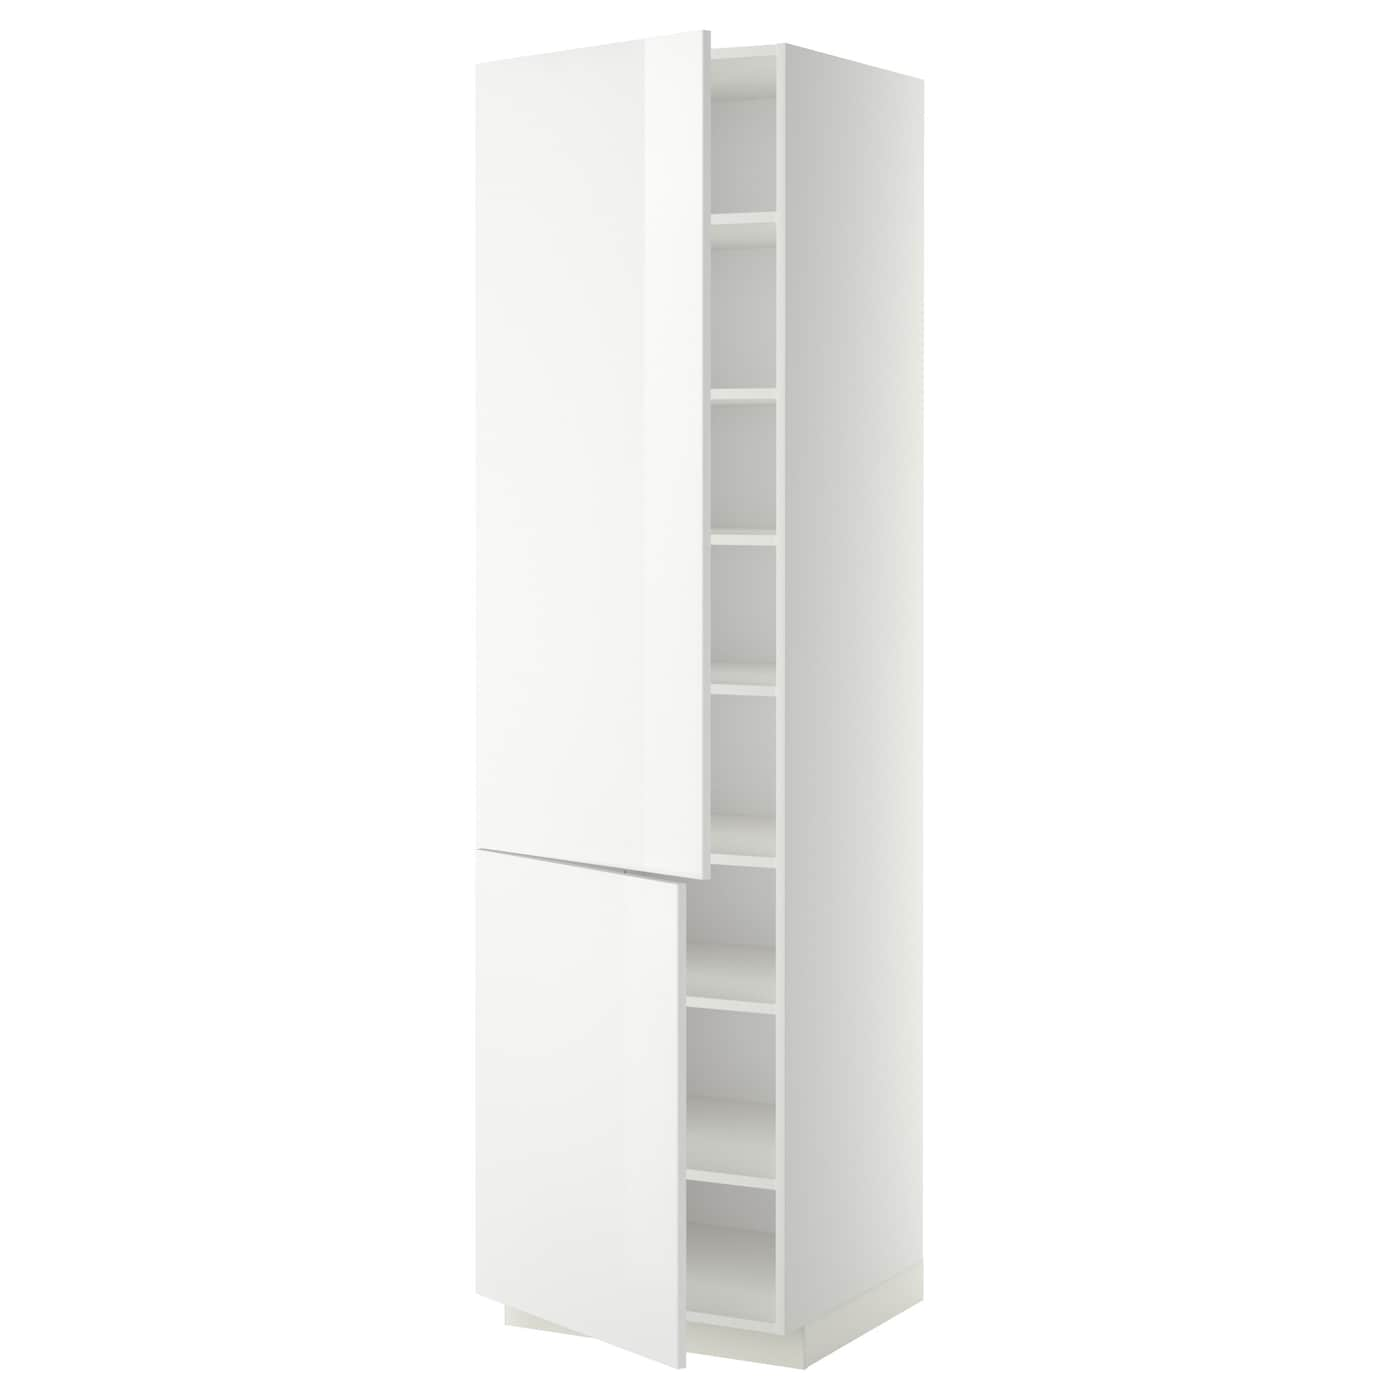 IKEA METOD high cabinet with shelves/2 doors Sturdy frame construction, 18 mm thick.